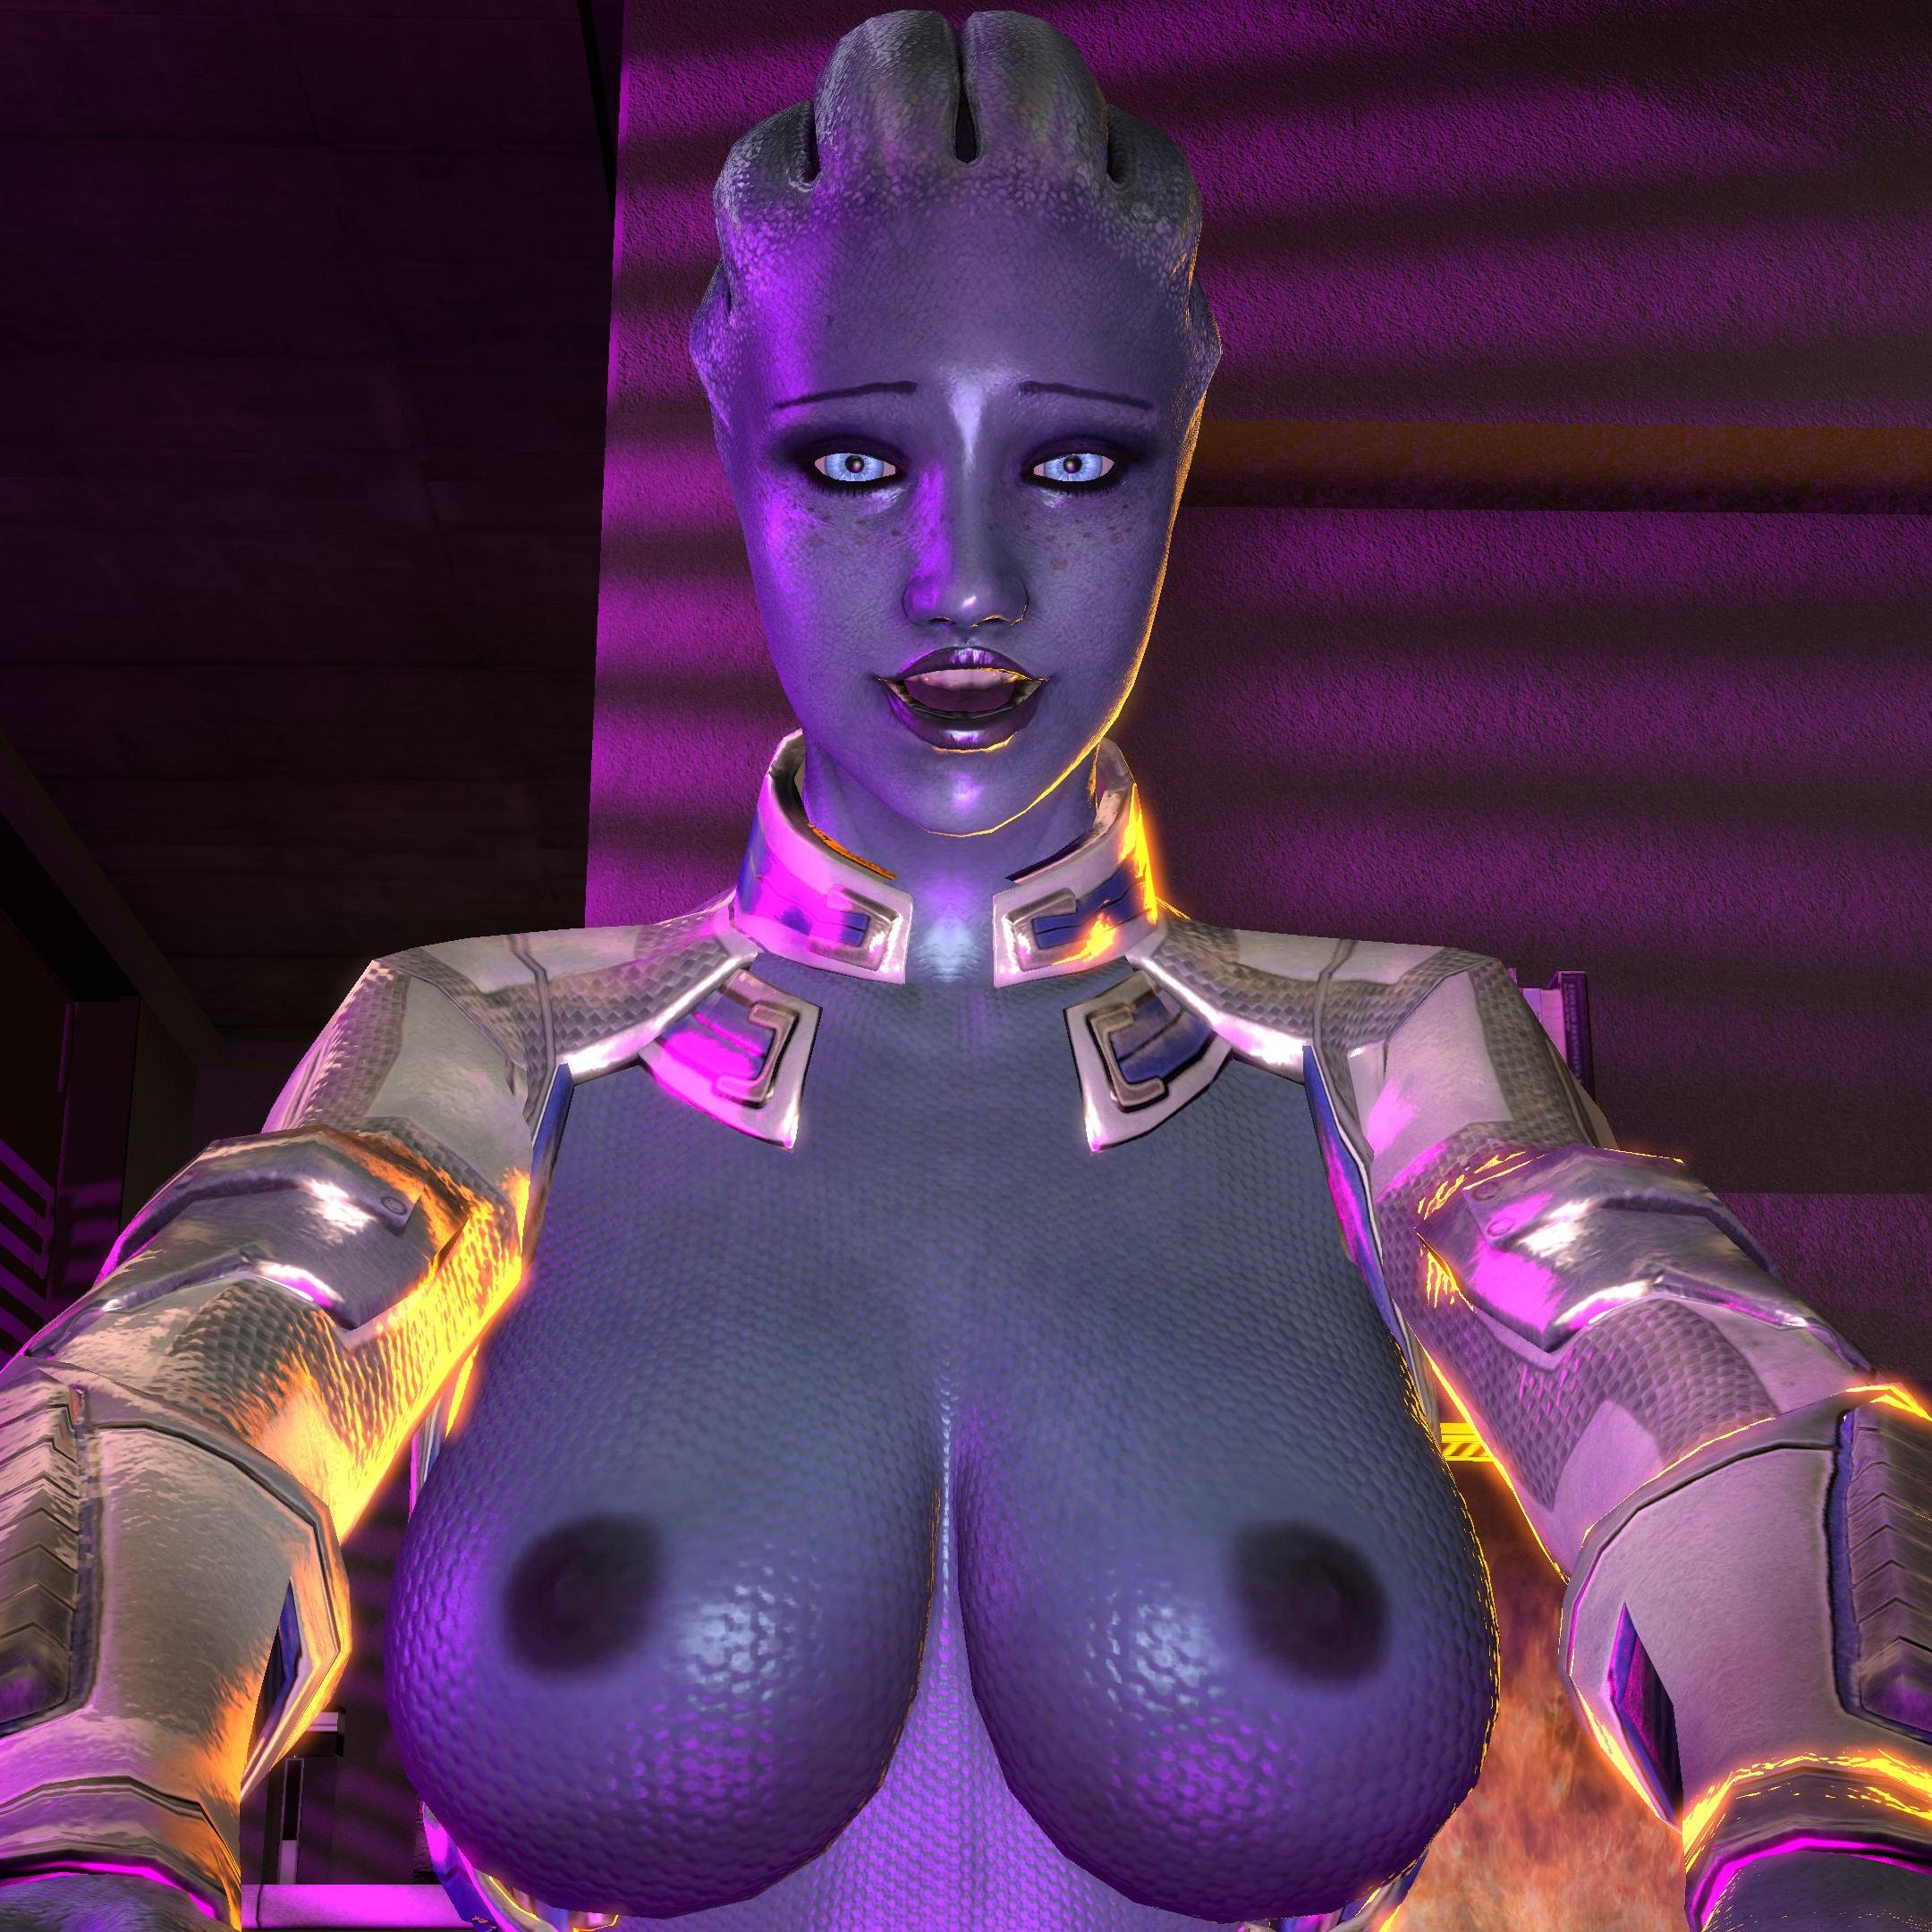 Liara Tsoni Gives You A Lapdance